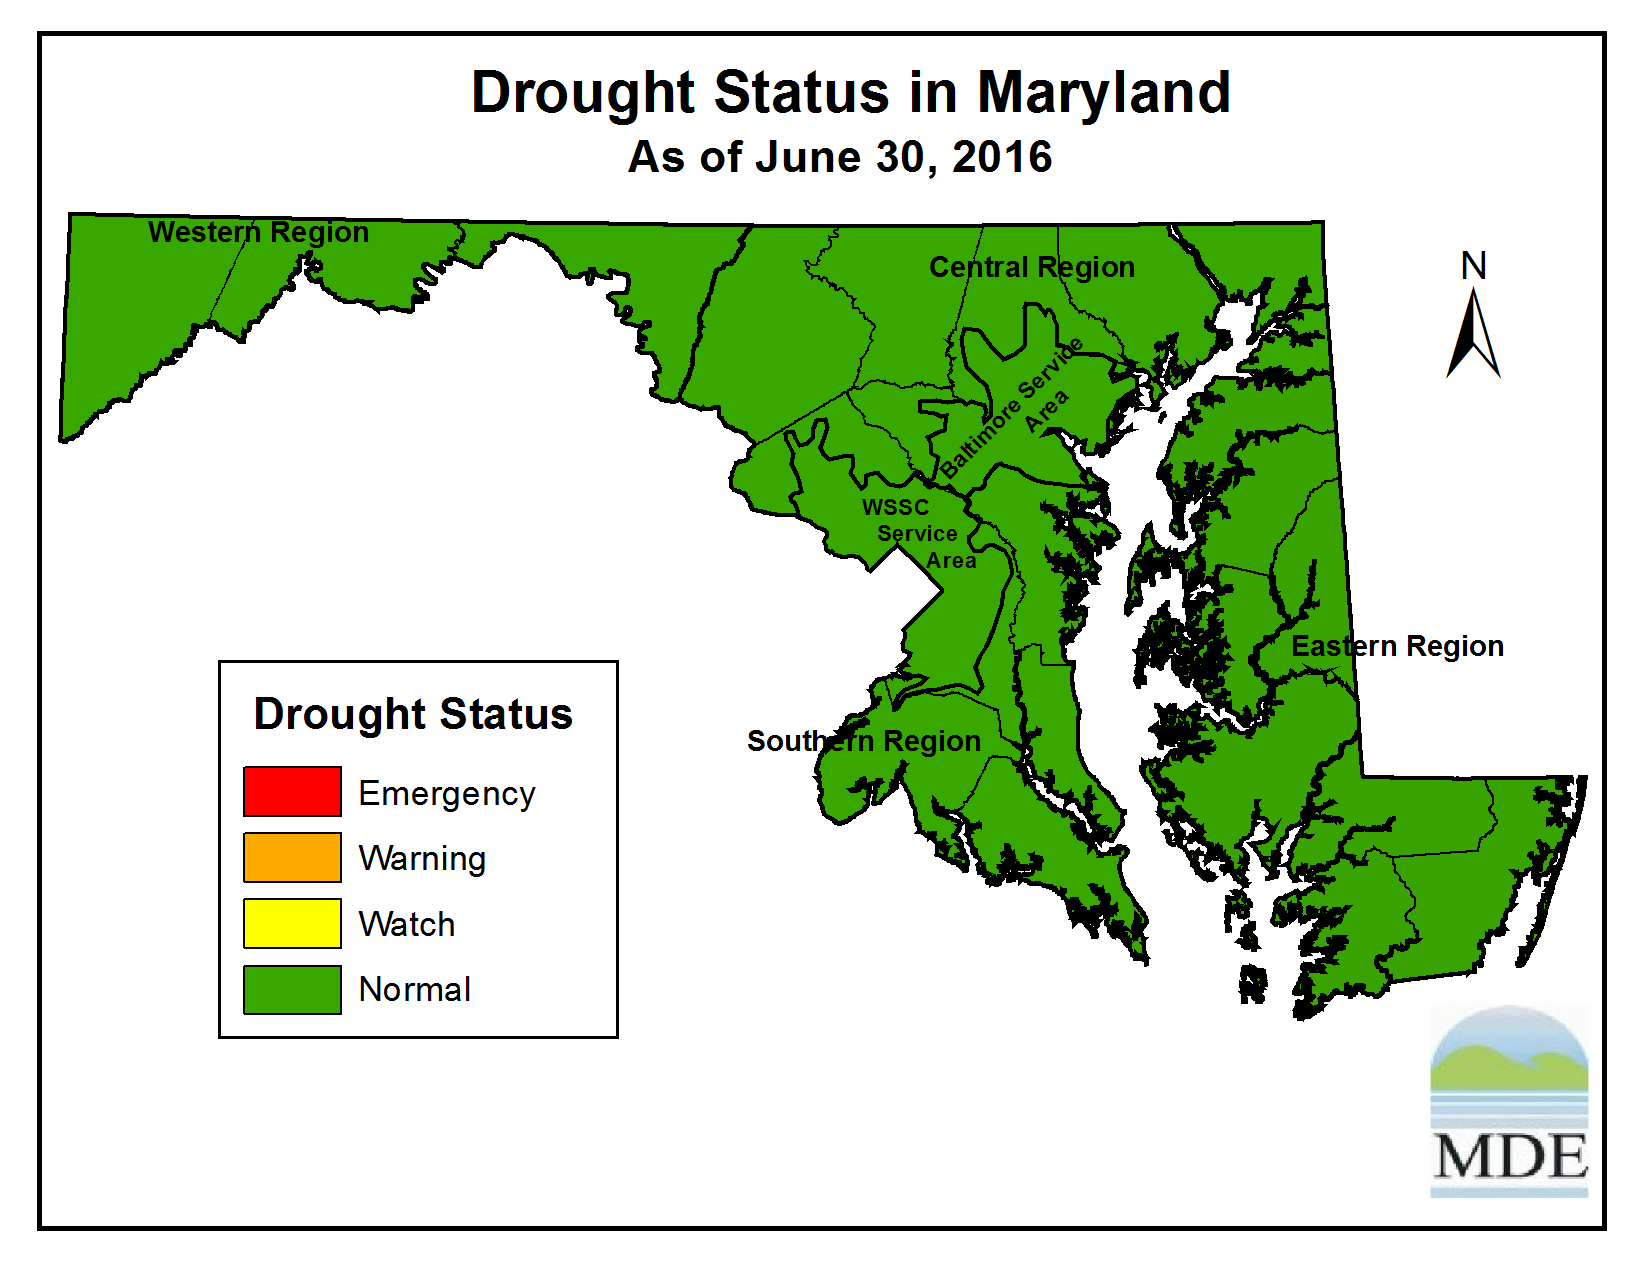 Drought Status as of June 30, 2016